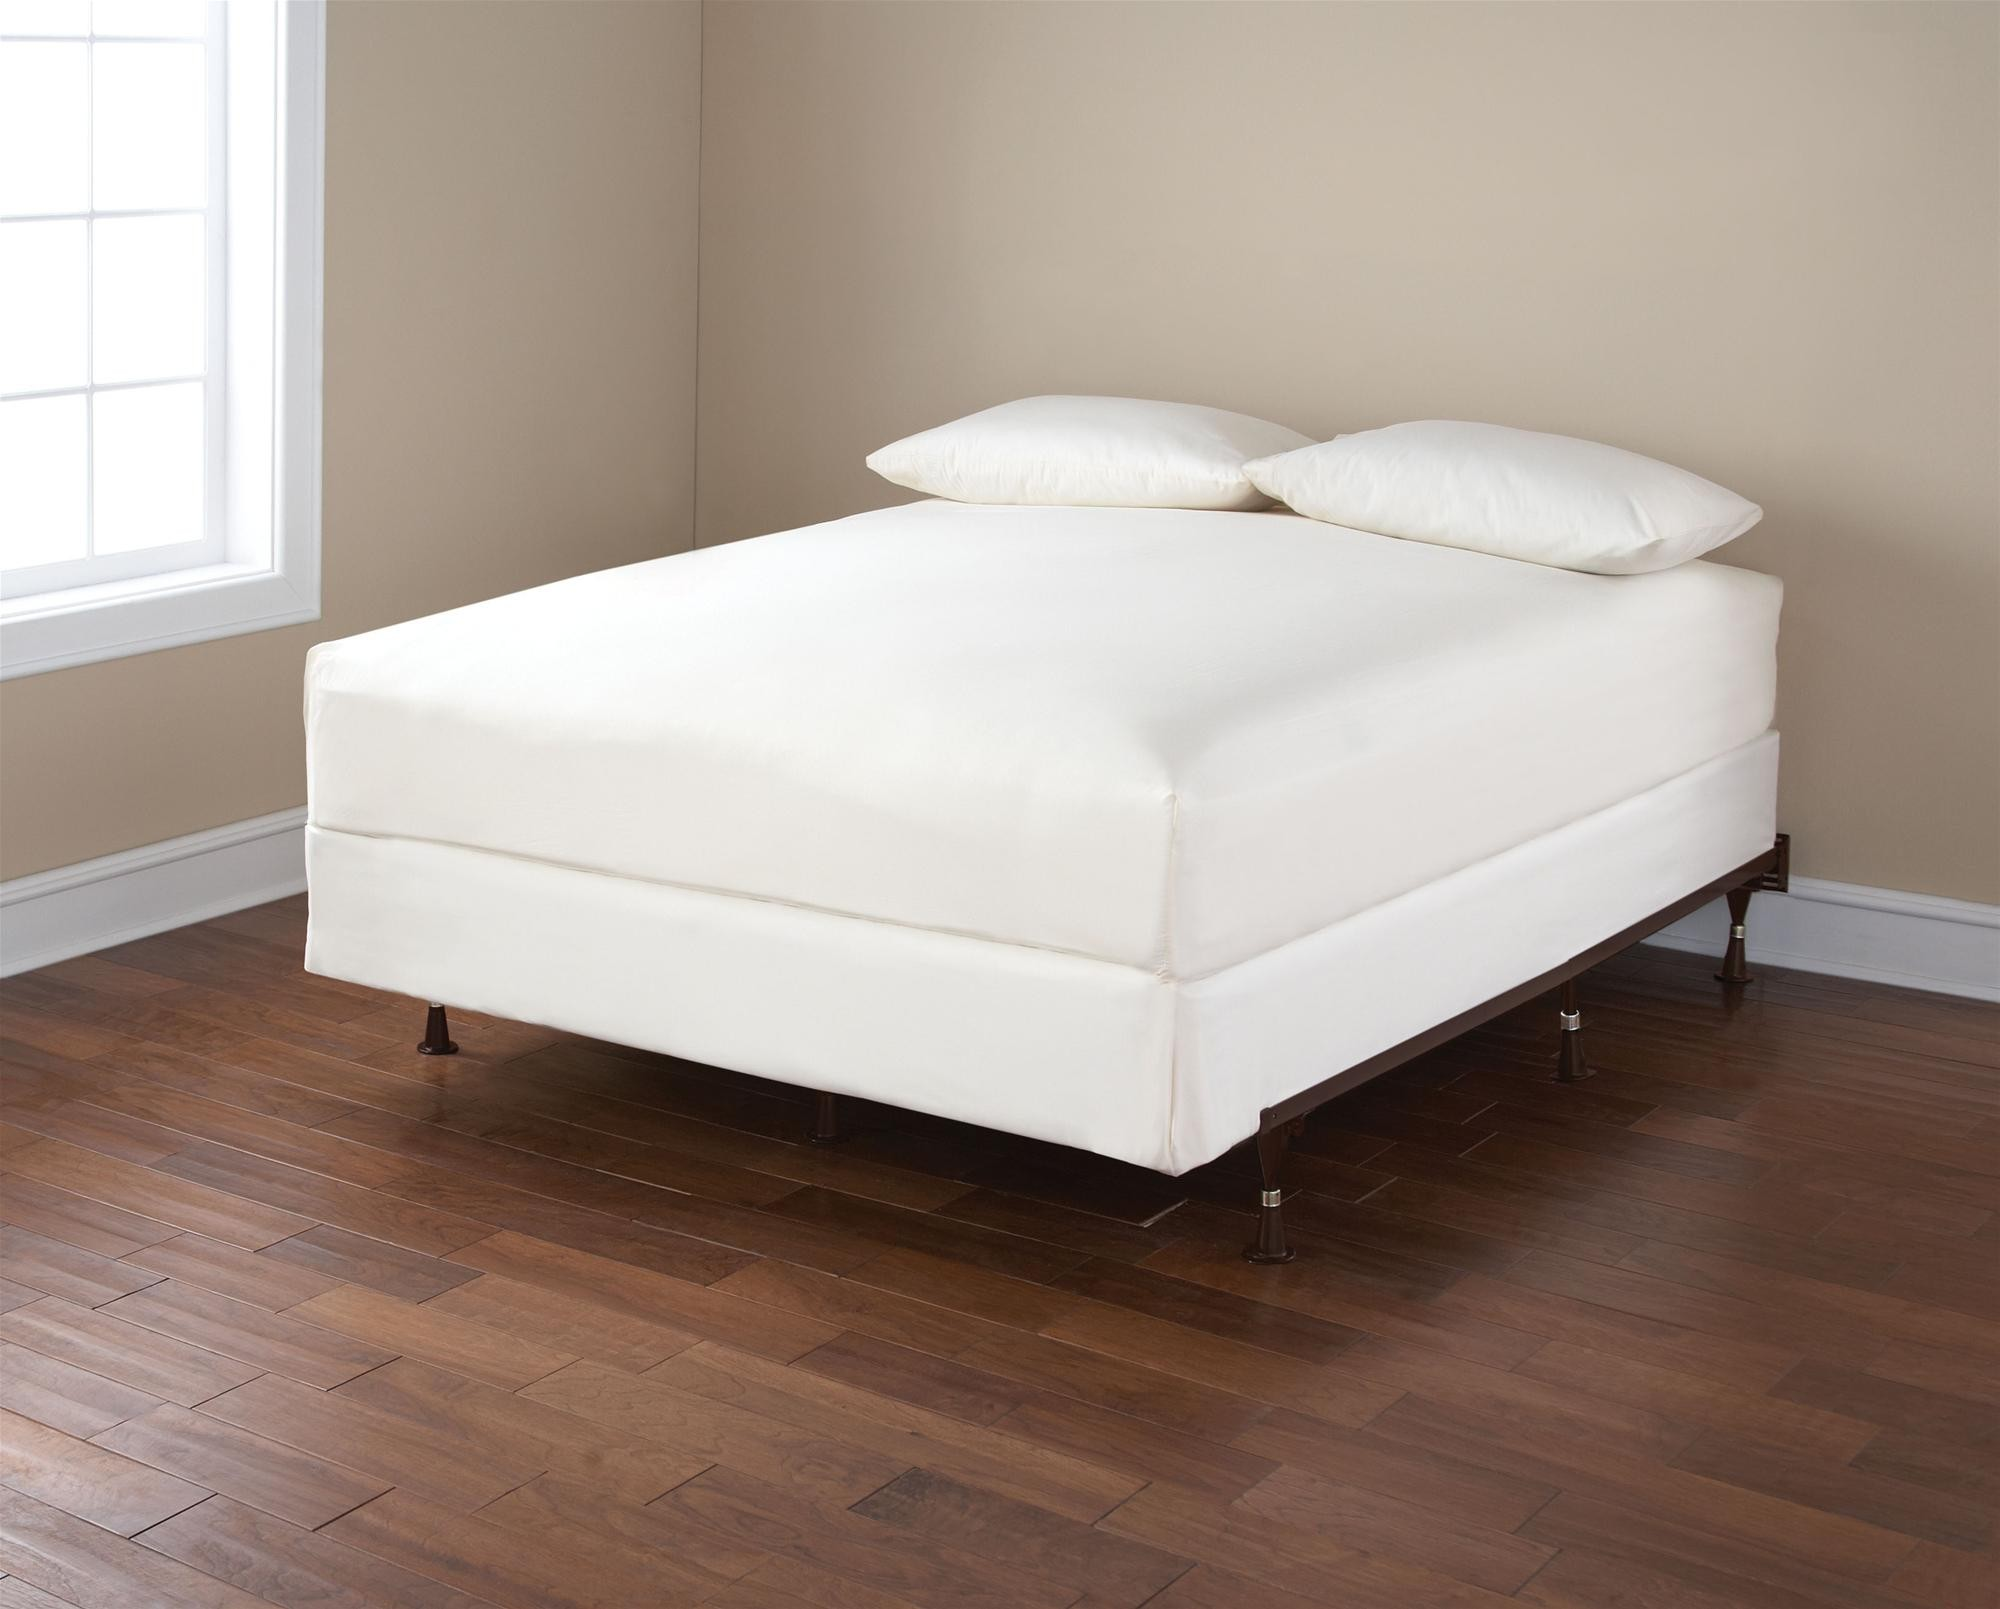 Beds And Beds How To Store A Mattress Box Spring And Bed Frame